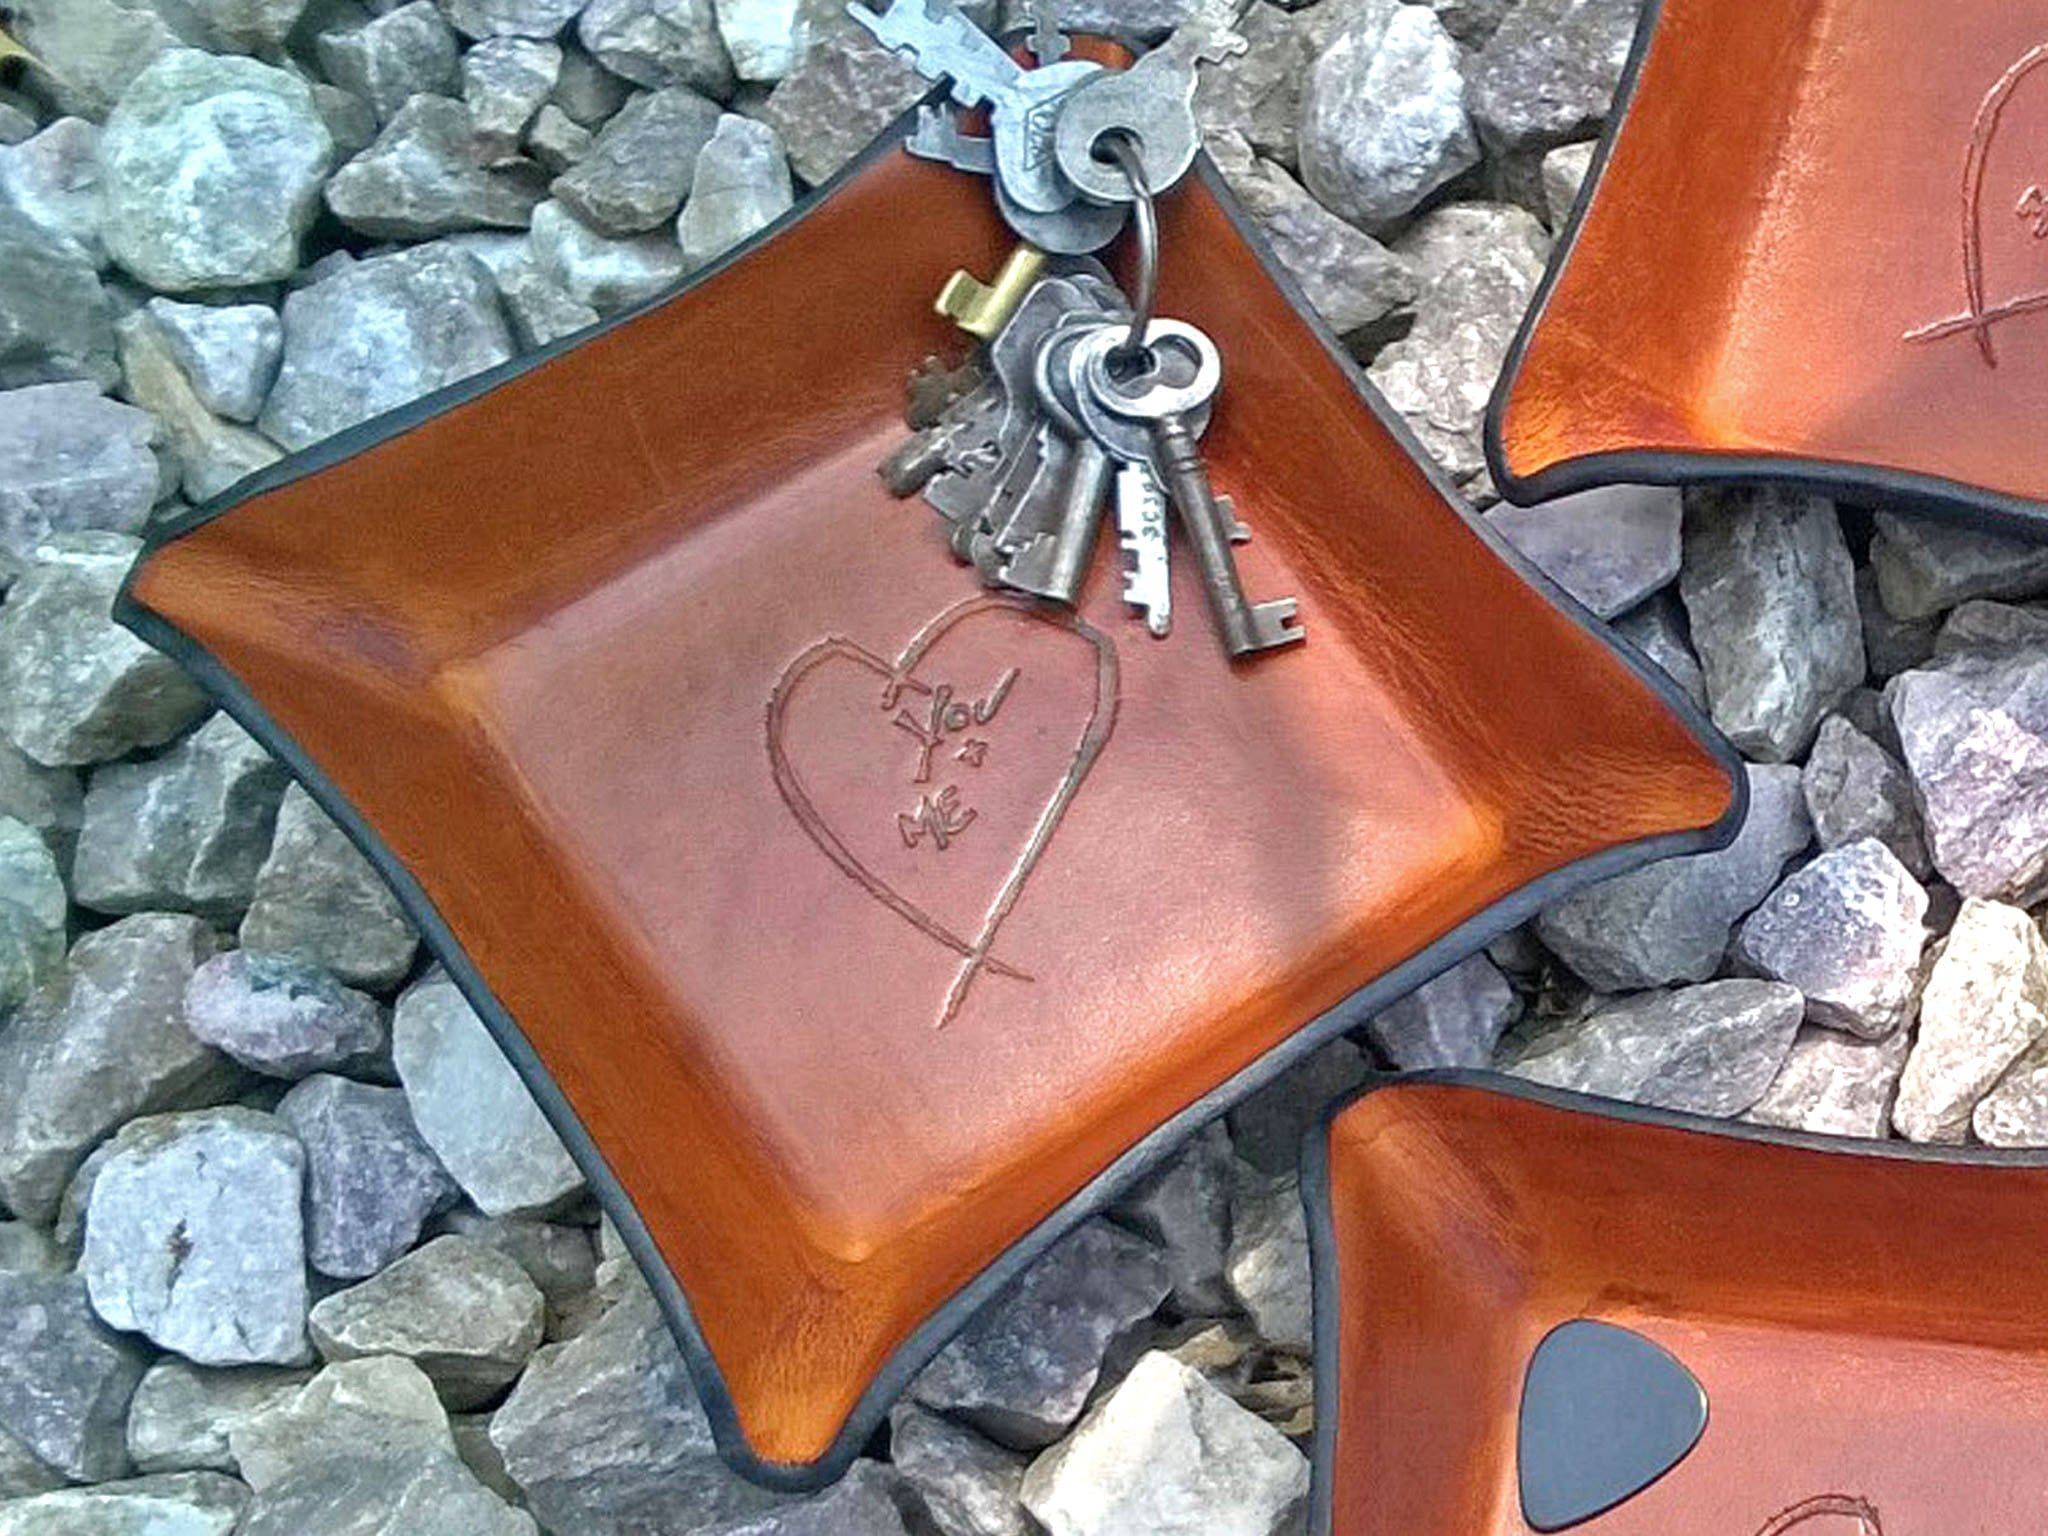 Third anniversary leather Personalized Leather Valet Tray 3rd anniversary personalized leather valet tray 3 year anniversary leather Leather 3rd anniversary gifts custom leather valet tray